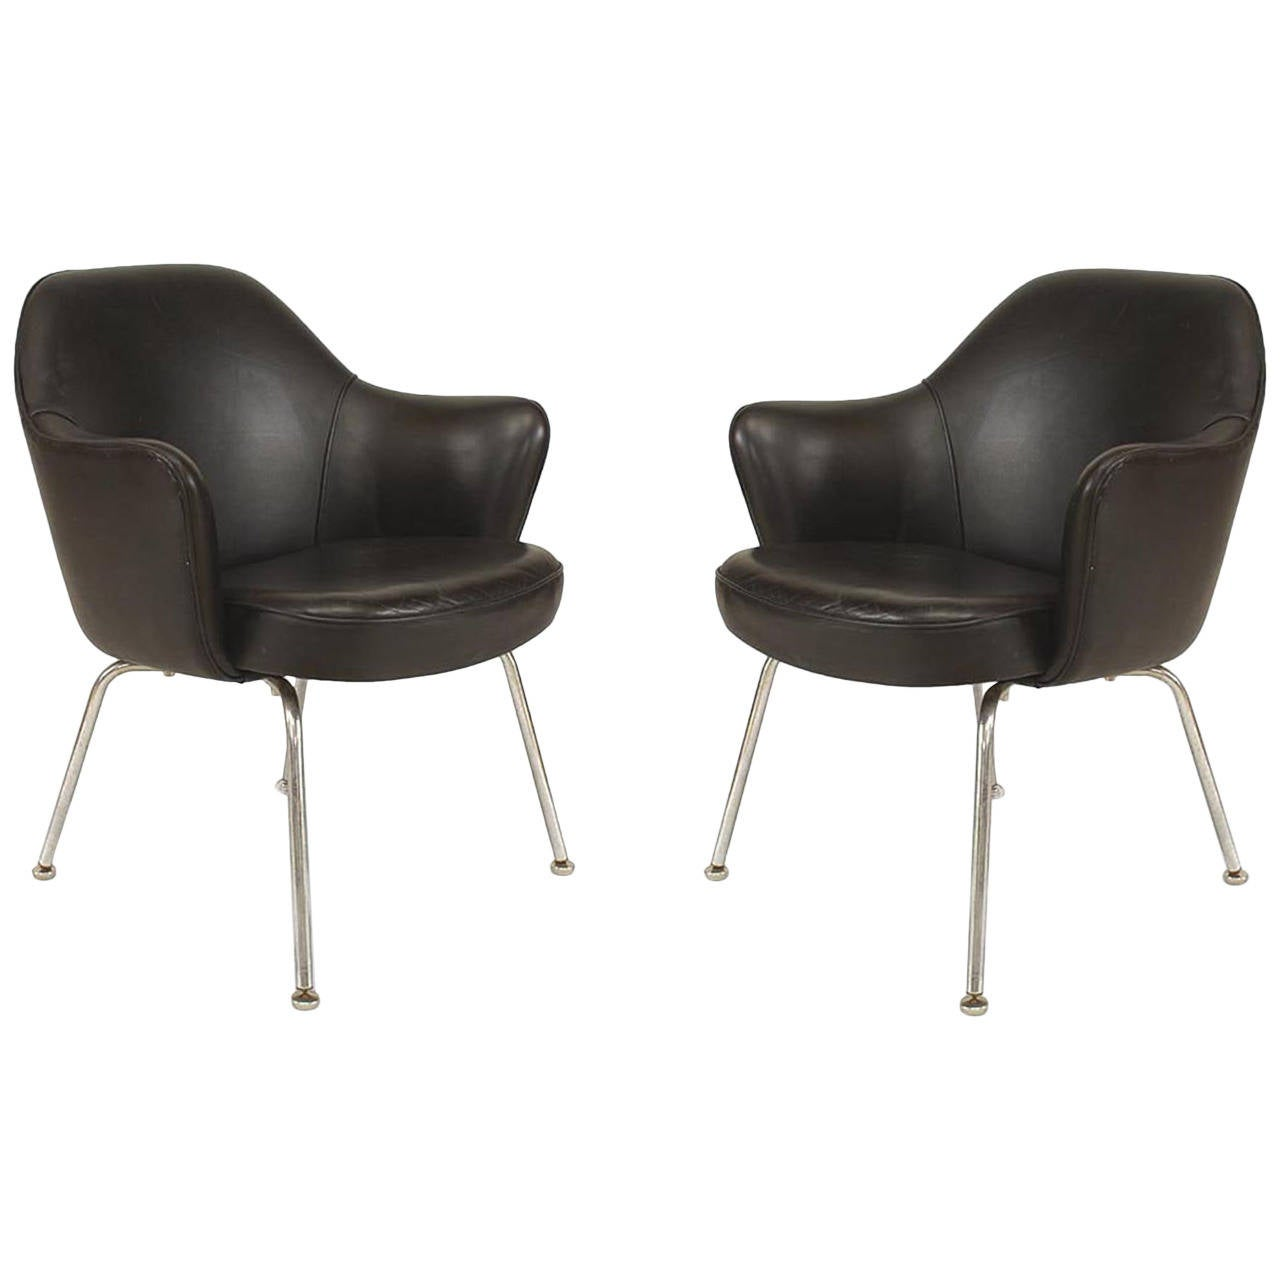 Mid Century Modern Leather Tub Chairs Attributed to Knoll